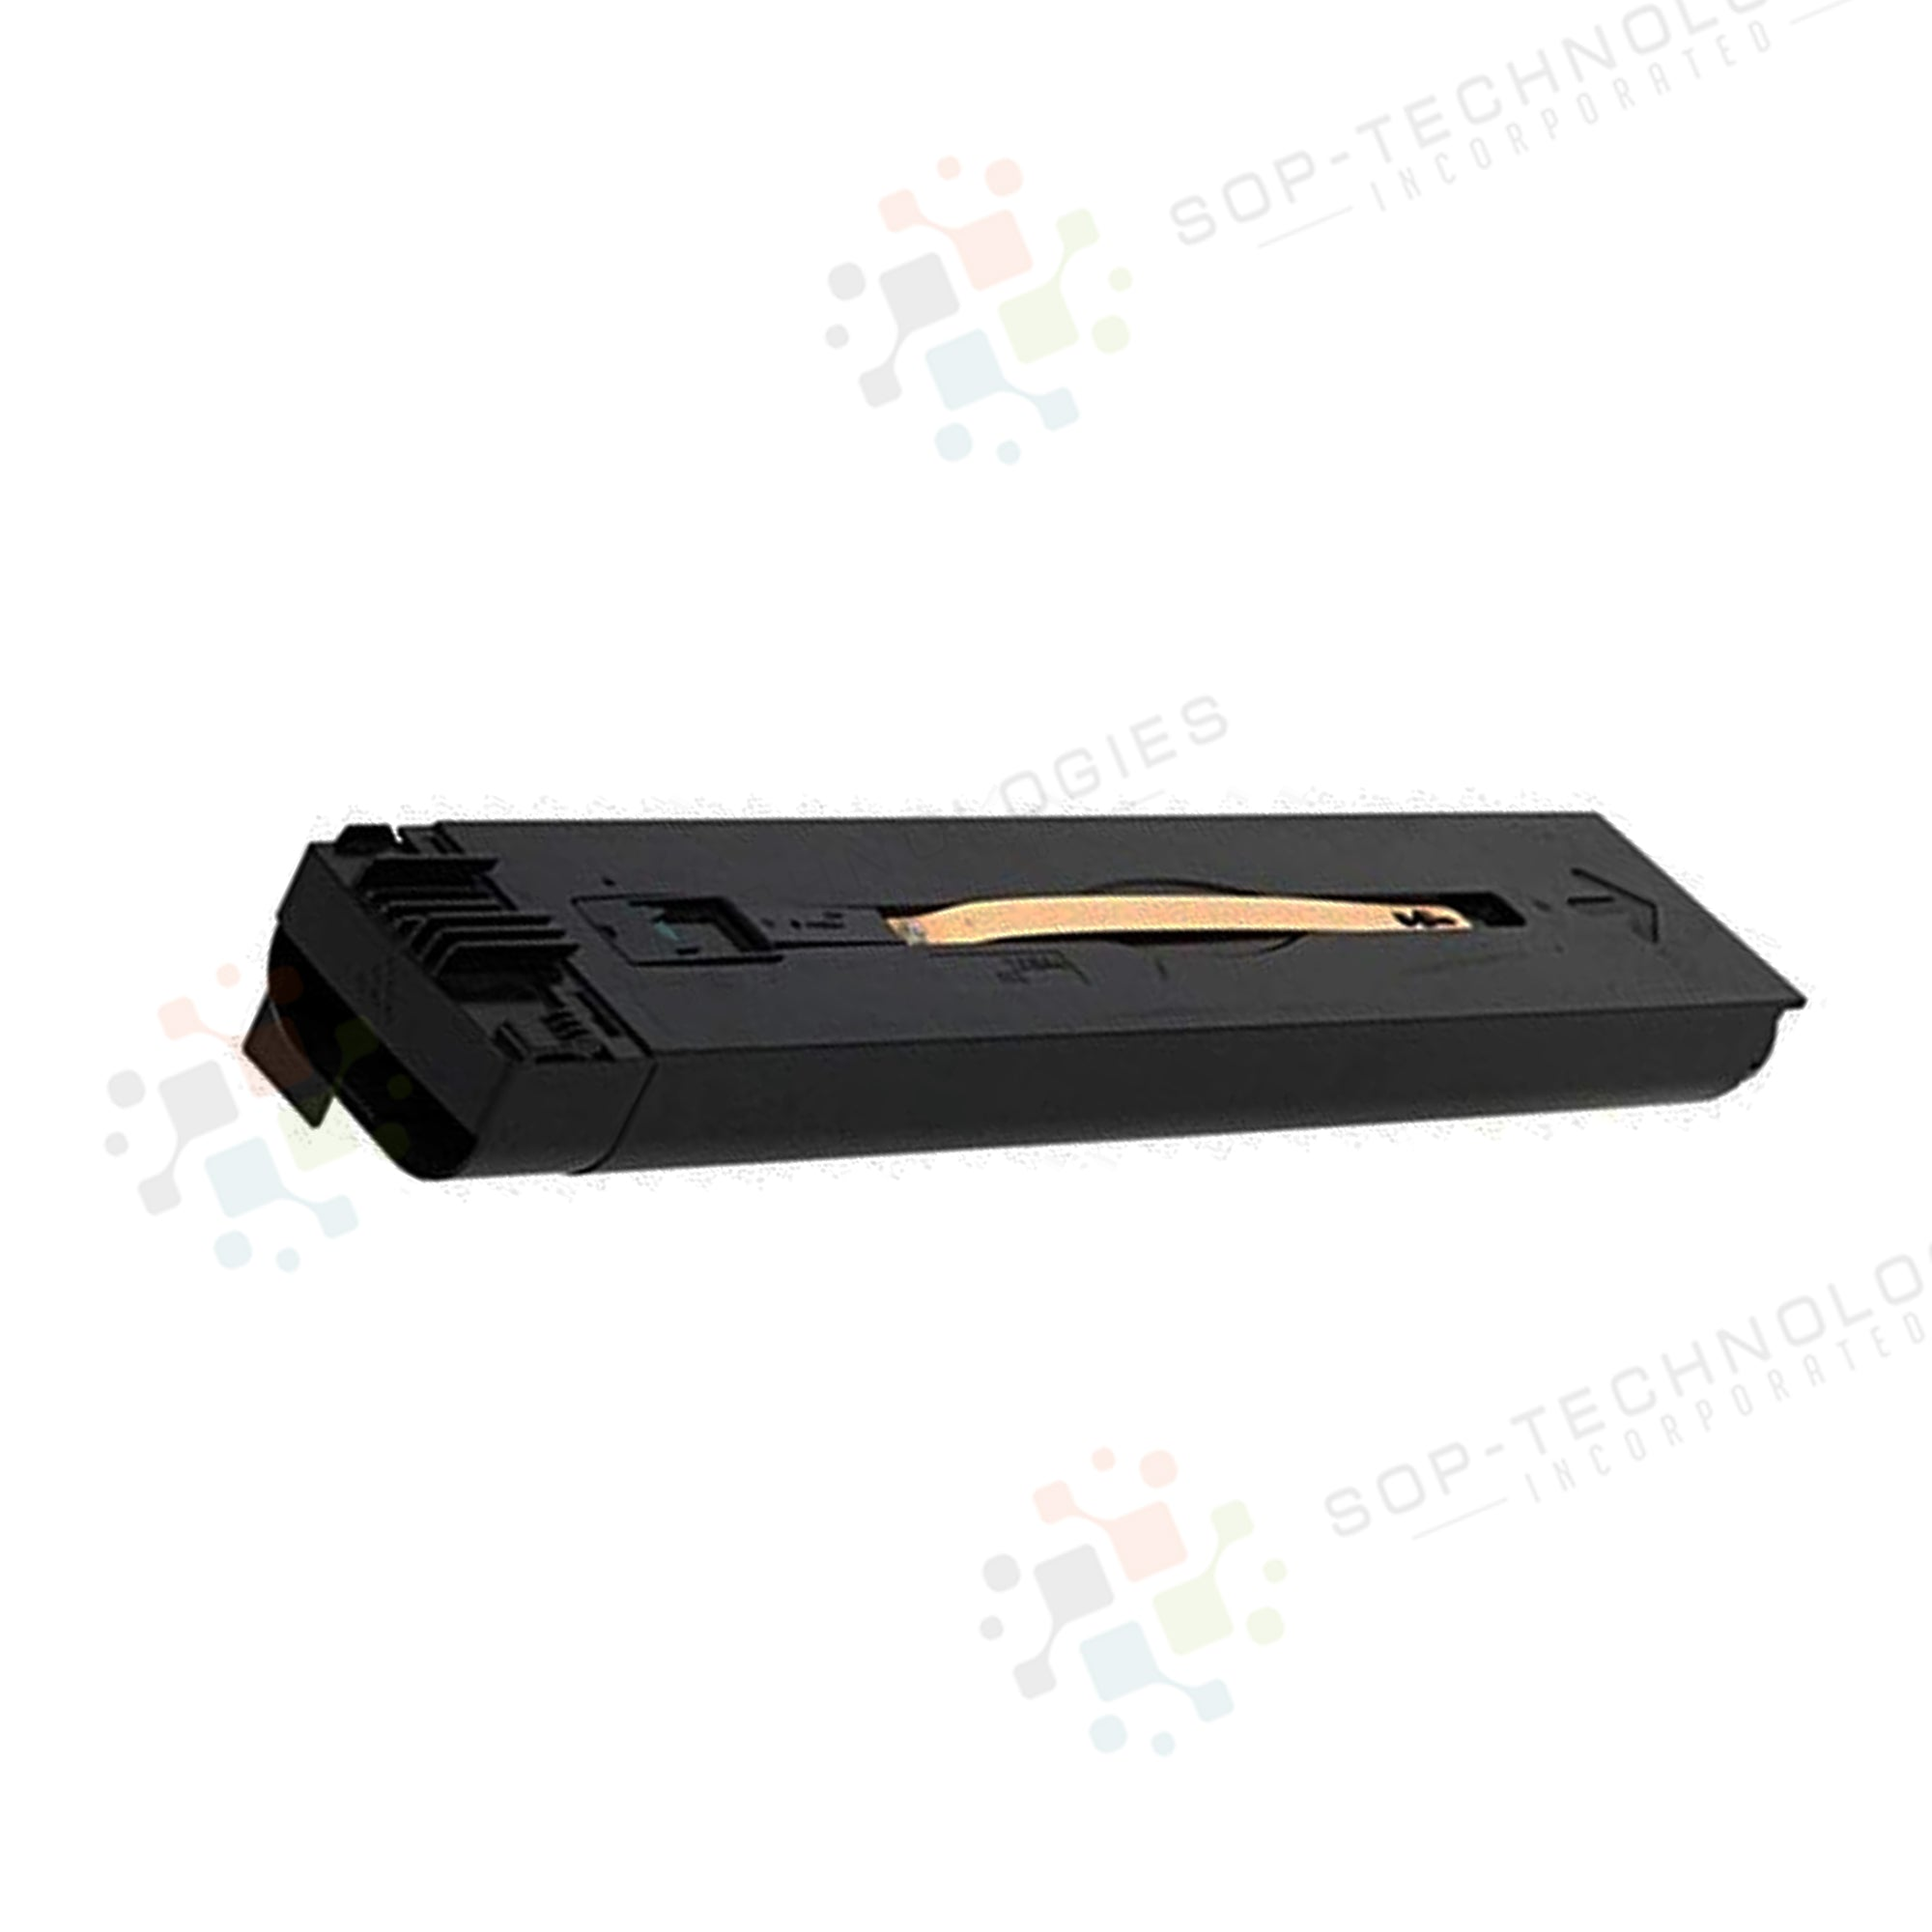 1 Pack Toner Cartridge DC250 7665 250 For Xerox Docucolor 240 242 260 BLACK - SOP-TECHNOLOGIES, INC.